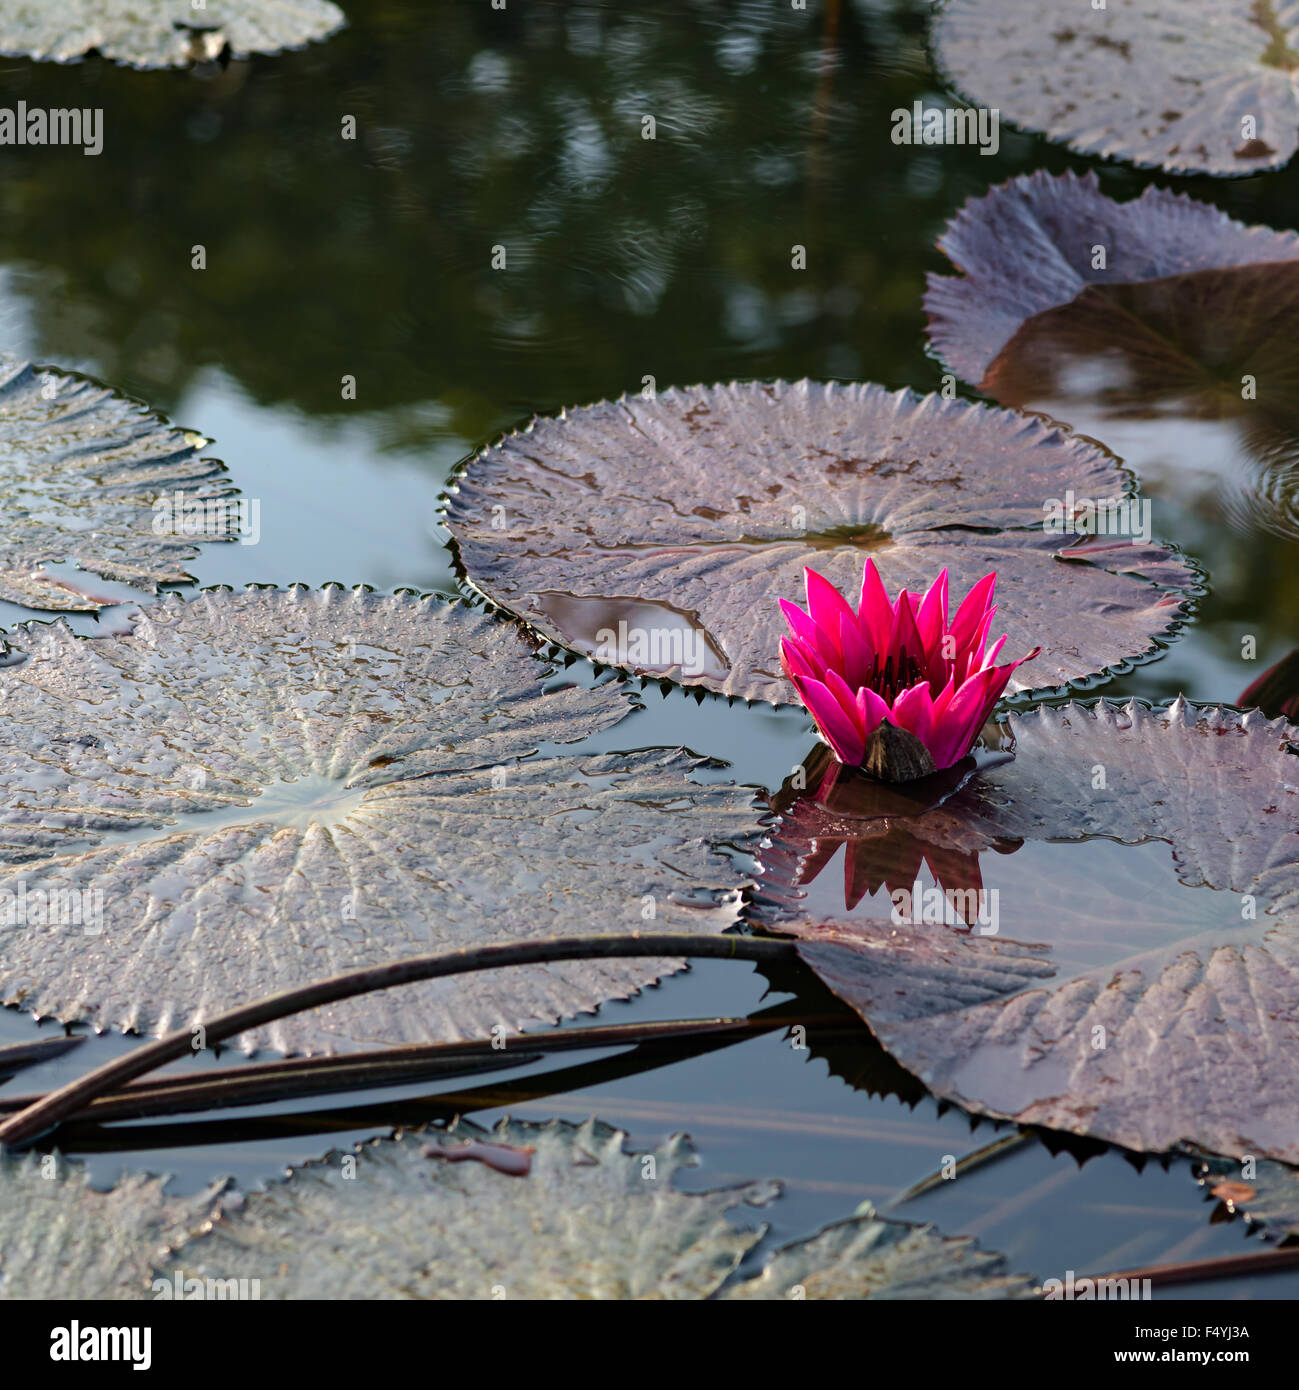 Single Water Lily Lotus Flower Pond Square Composition Stock Photo